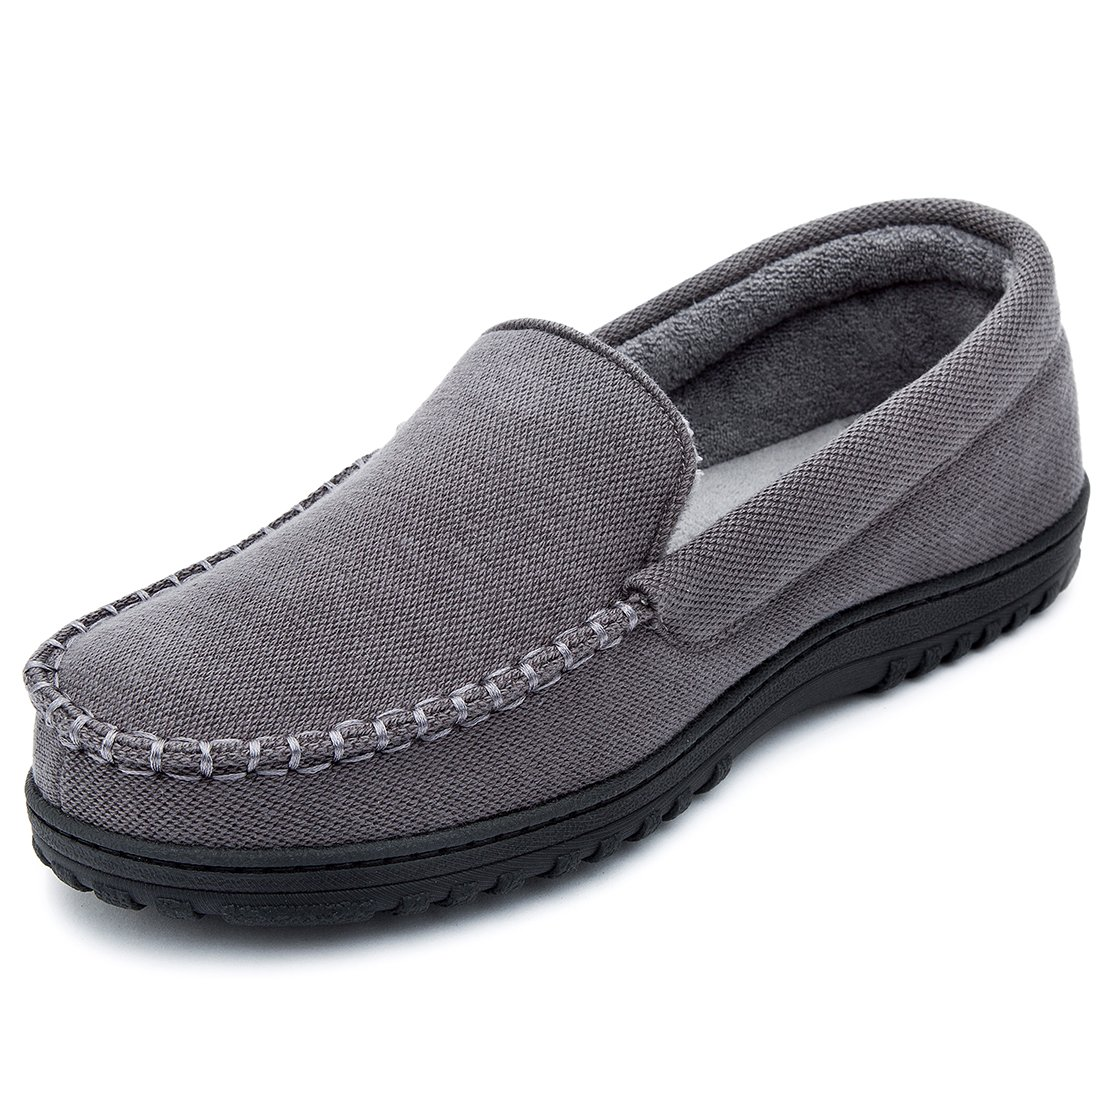 Cozy Niche Men's Moccasin Slippers, Anti-Slip House Shoes, Indoor Outdoor Rubber Sole Loafers (12 D(M) US, Dark Gray) by Cozy Niche